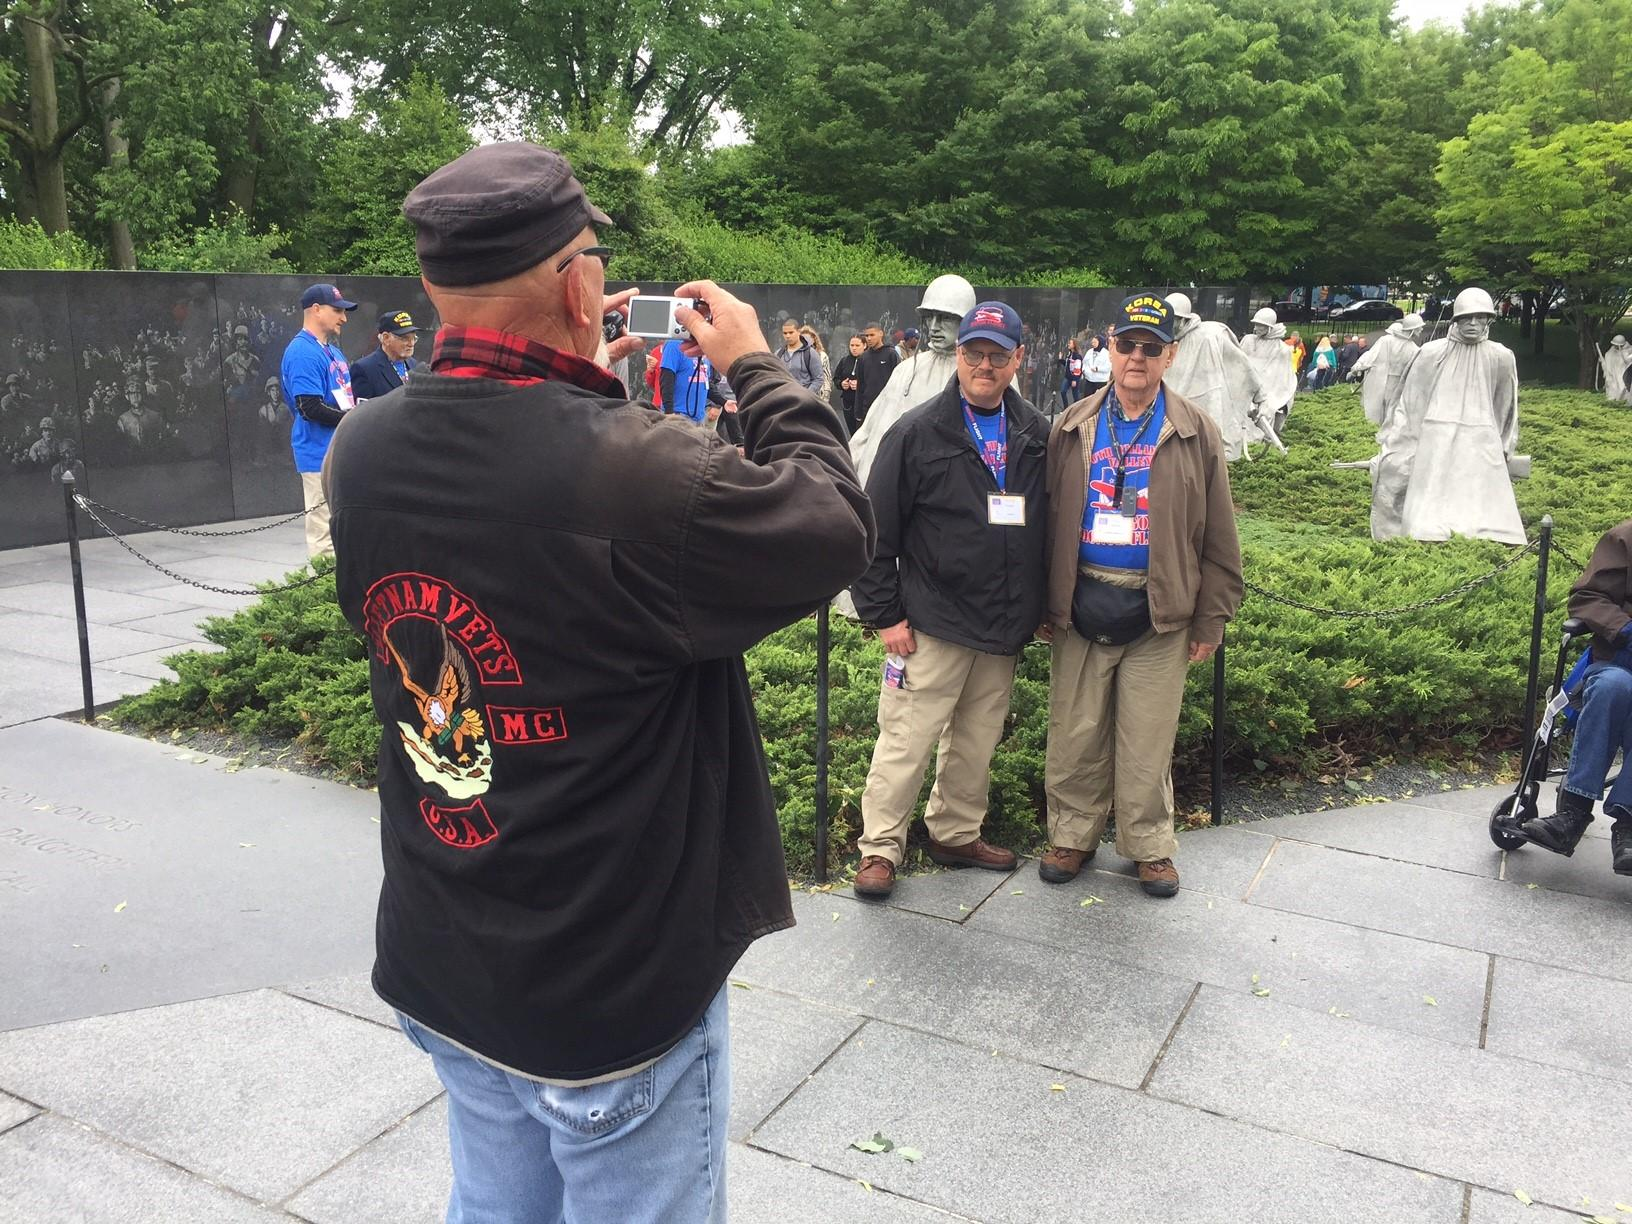 The South Willamette Valley Honor Flight visited the Korean War Veterans Memorial in Washington, D.C. Saturday morning. They will also visit the Arlington National Cemetery for the changing of the guard ceremony at the Tomb of the Unknown. (SBG photo)